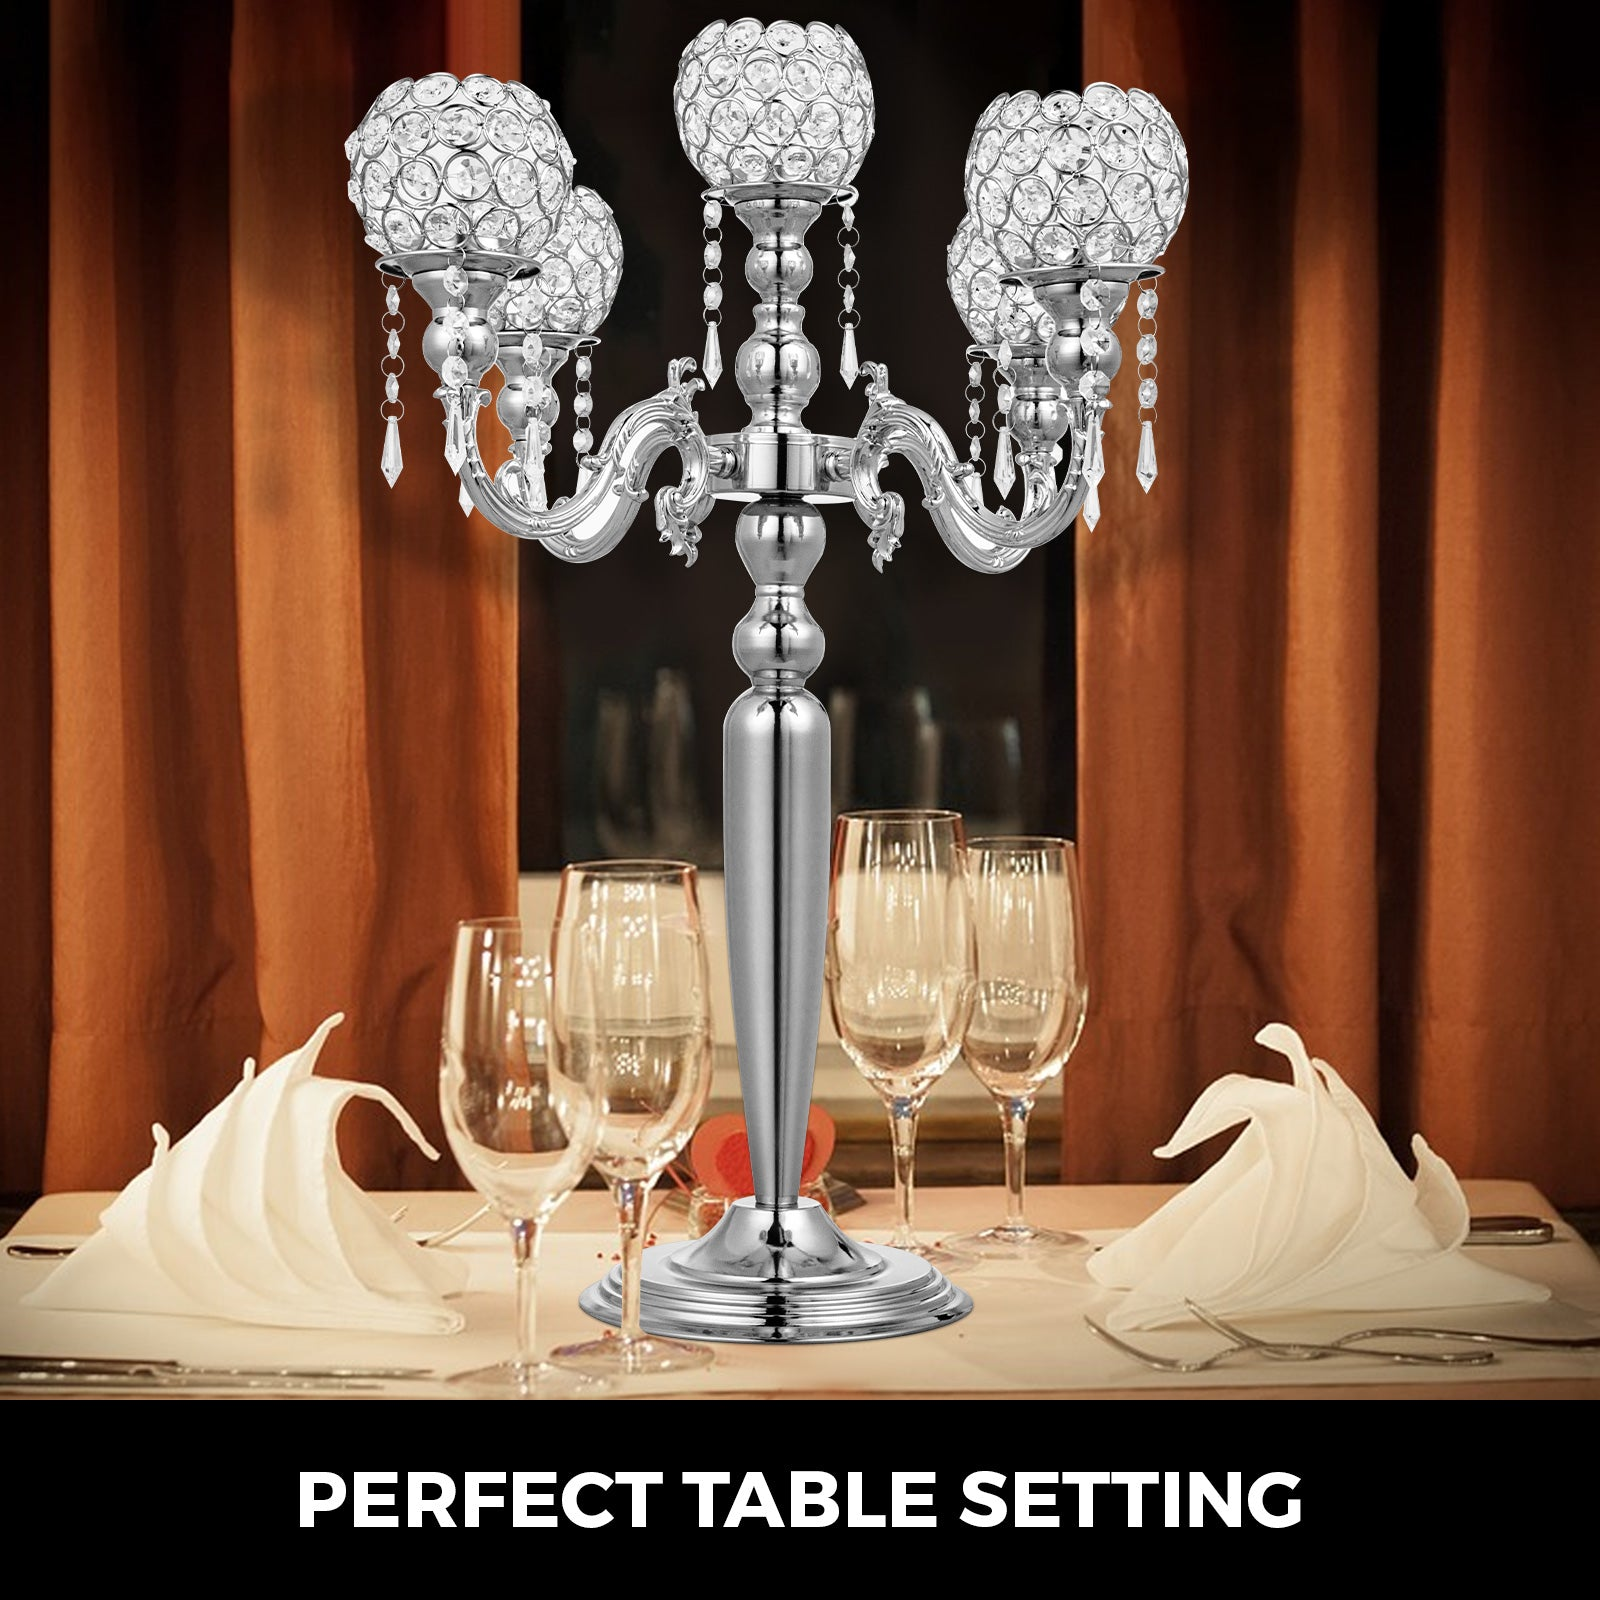 Wedding Candle Holder 5 Arms Candelabra Chandelier Crystal Votive Silver Decor